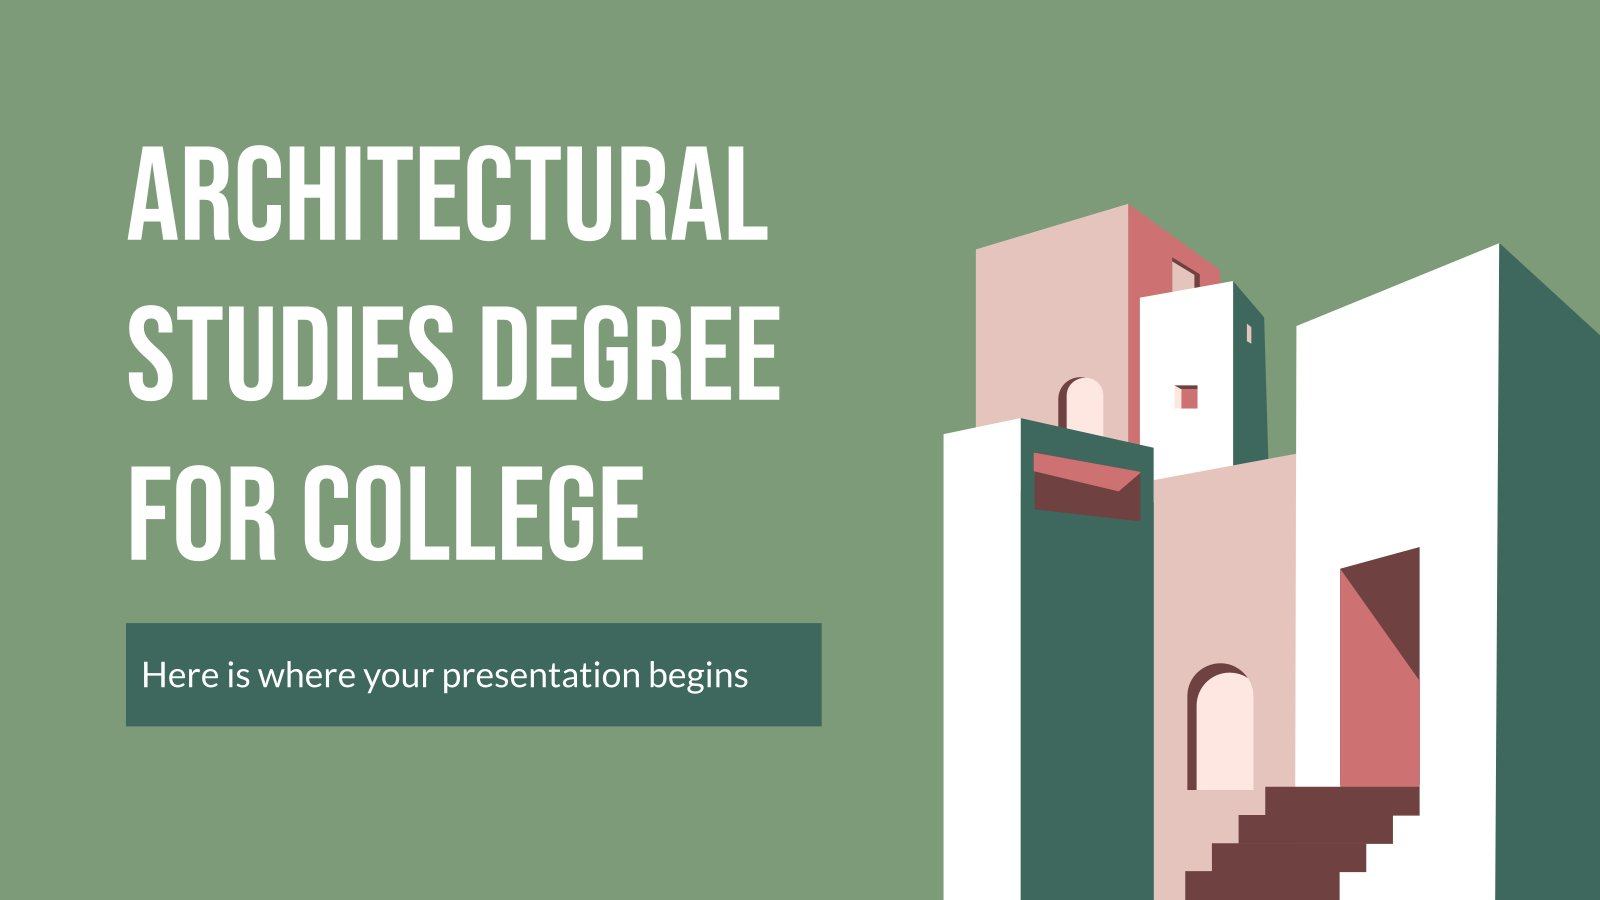 Architectural Studies Degree for College presentation template